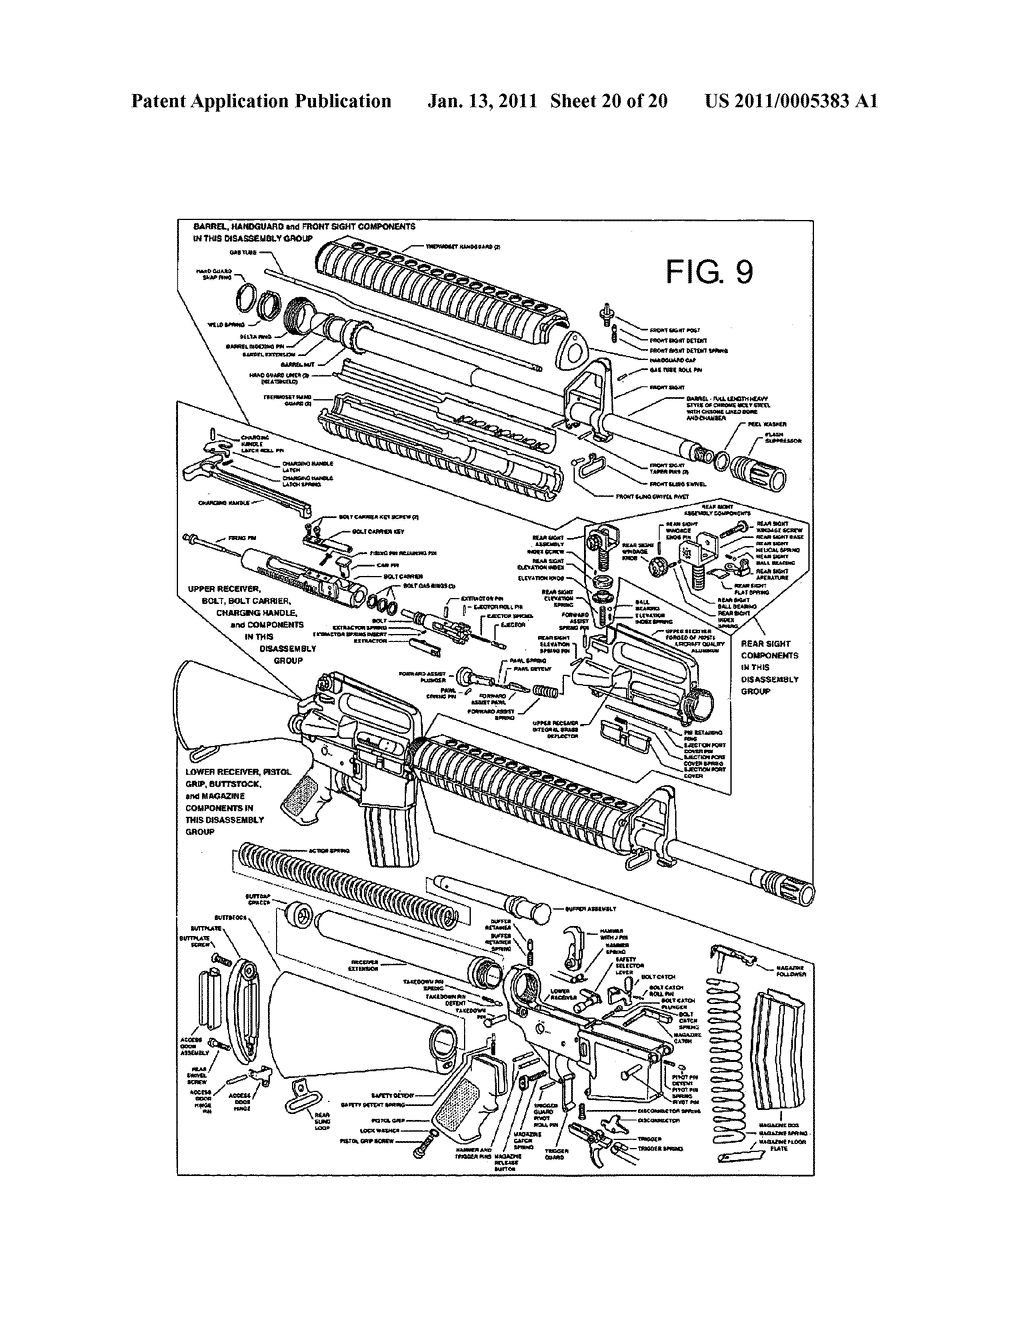 ar 15 lower diagram solar controller wiring schematic library cartridges and modifications for m16 ar15 rifle image 21